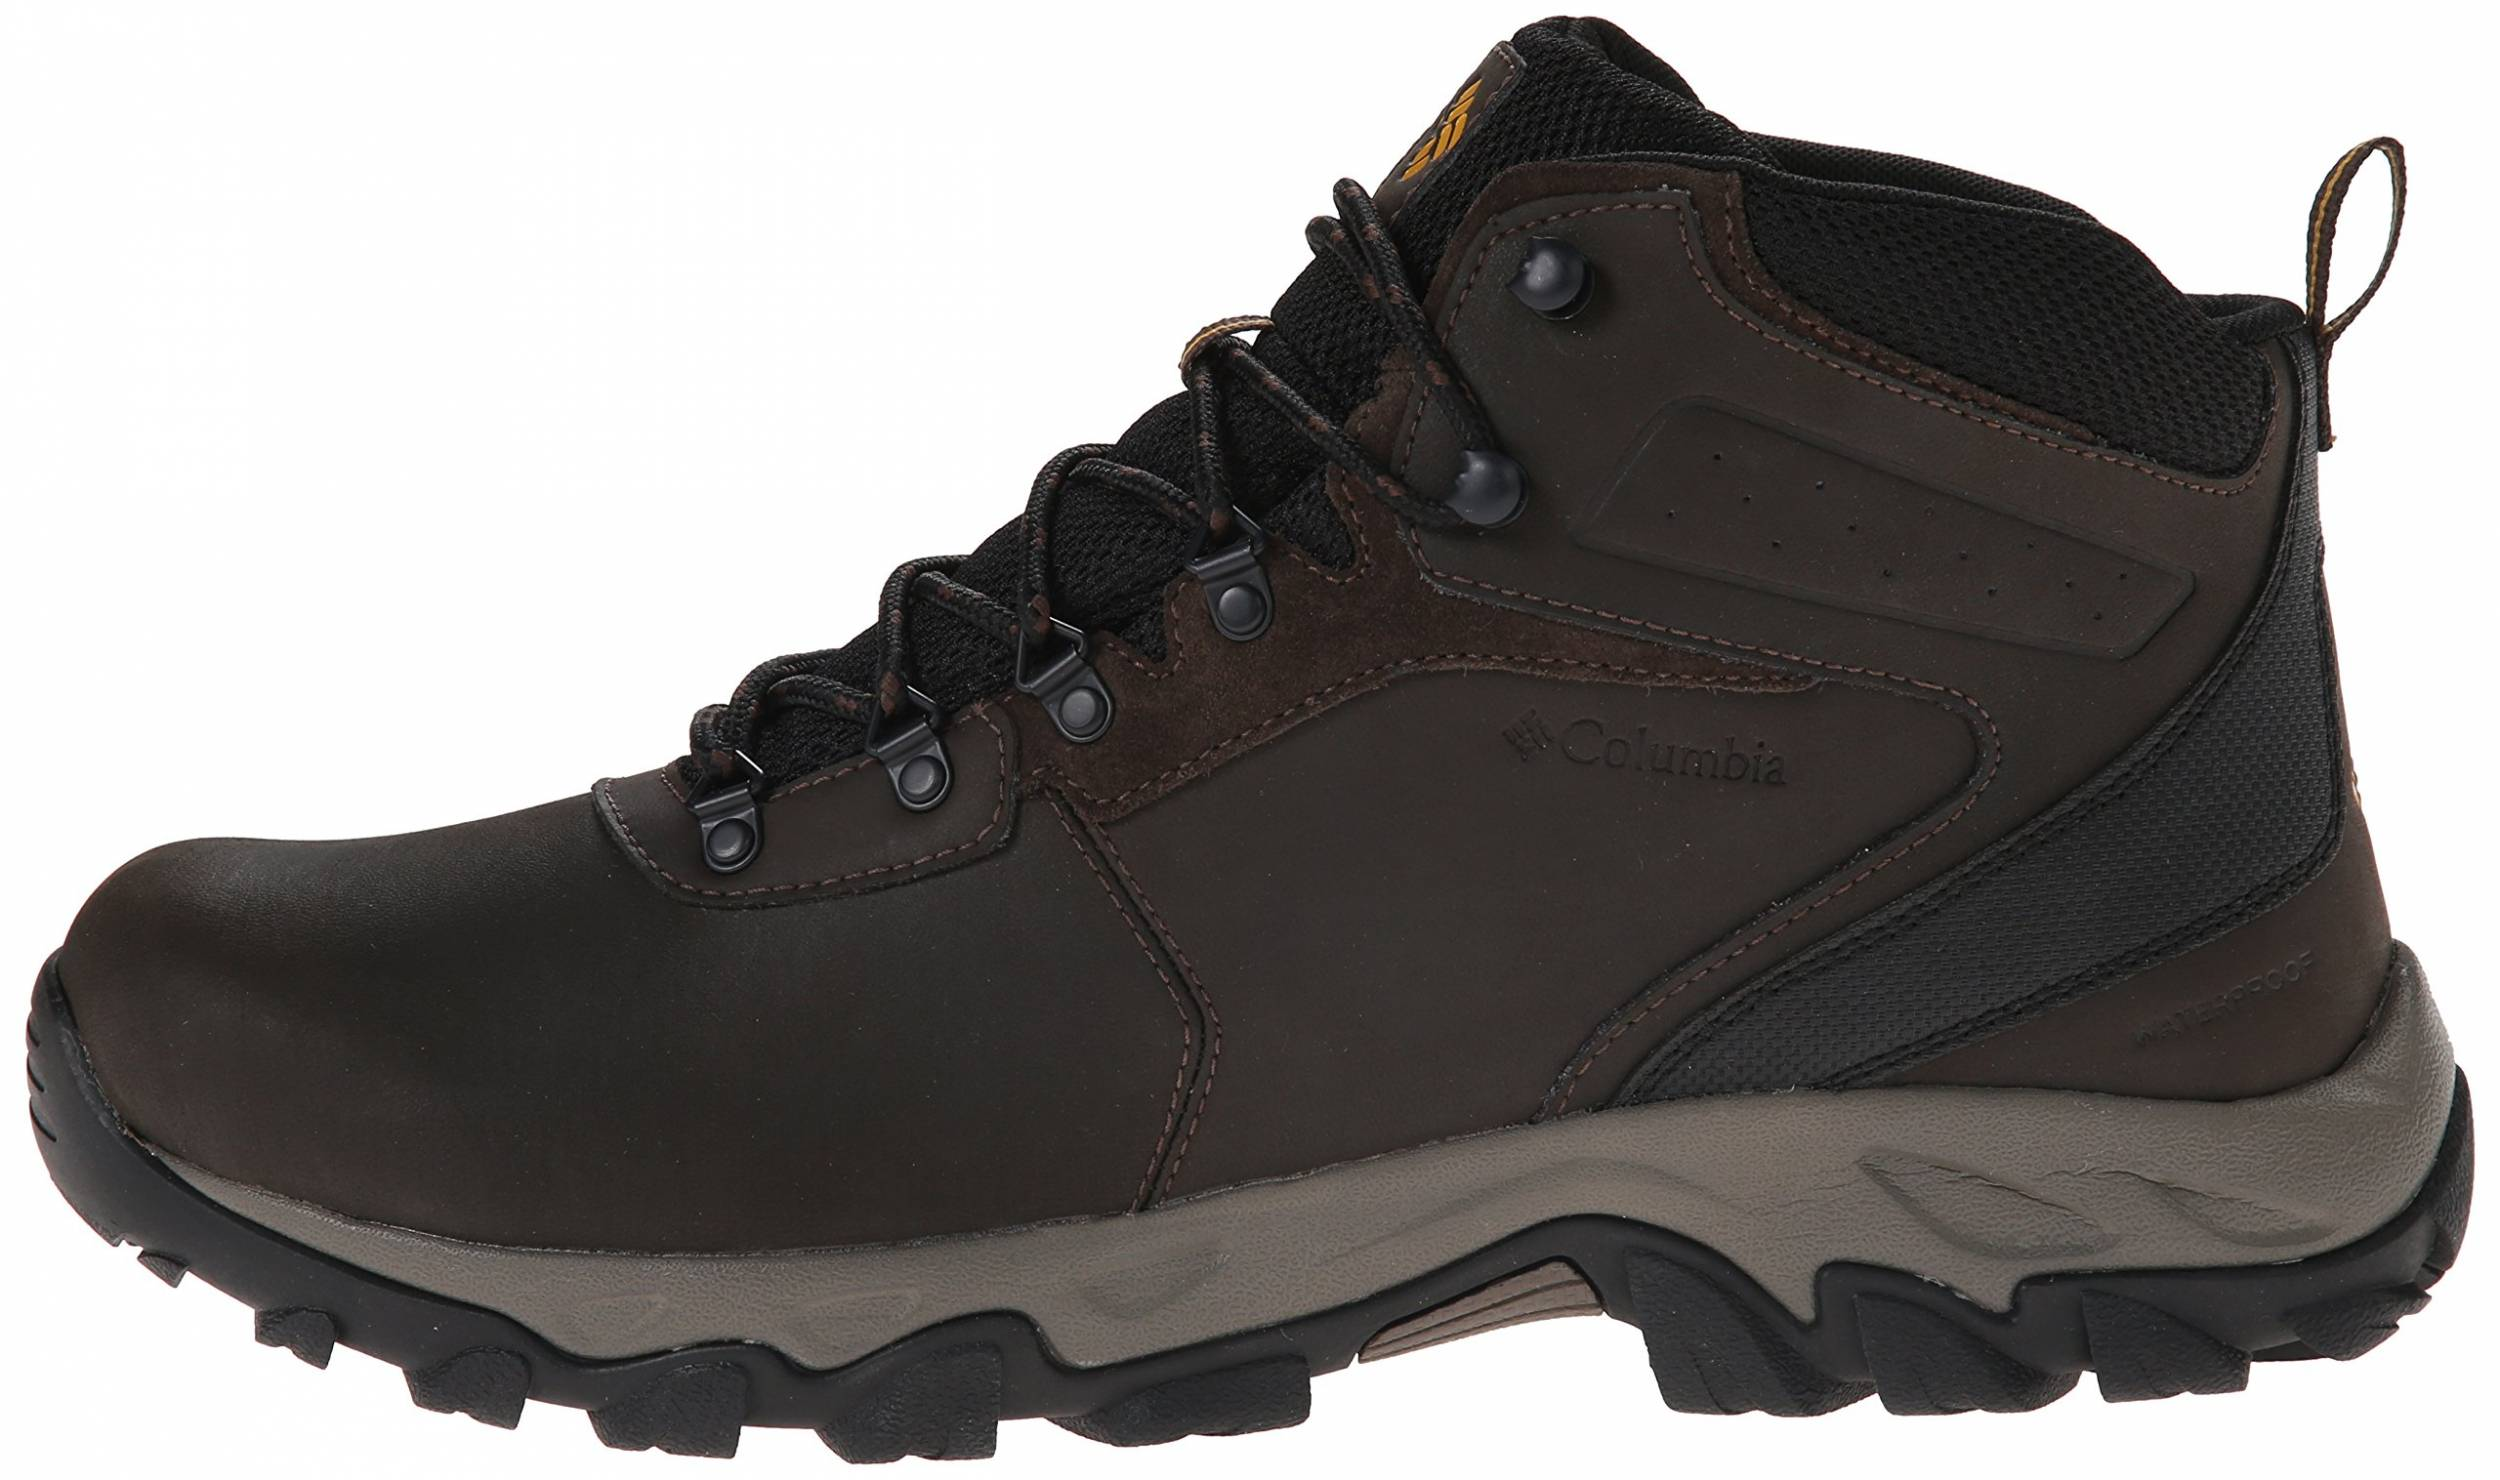 best affordable hiking shoes